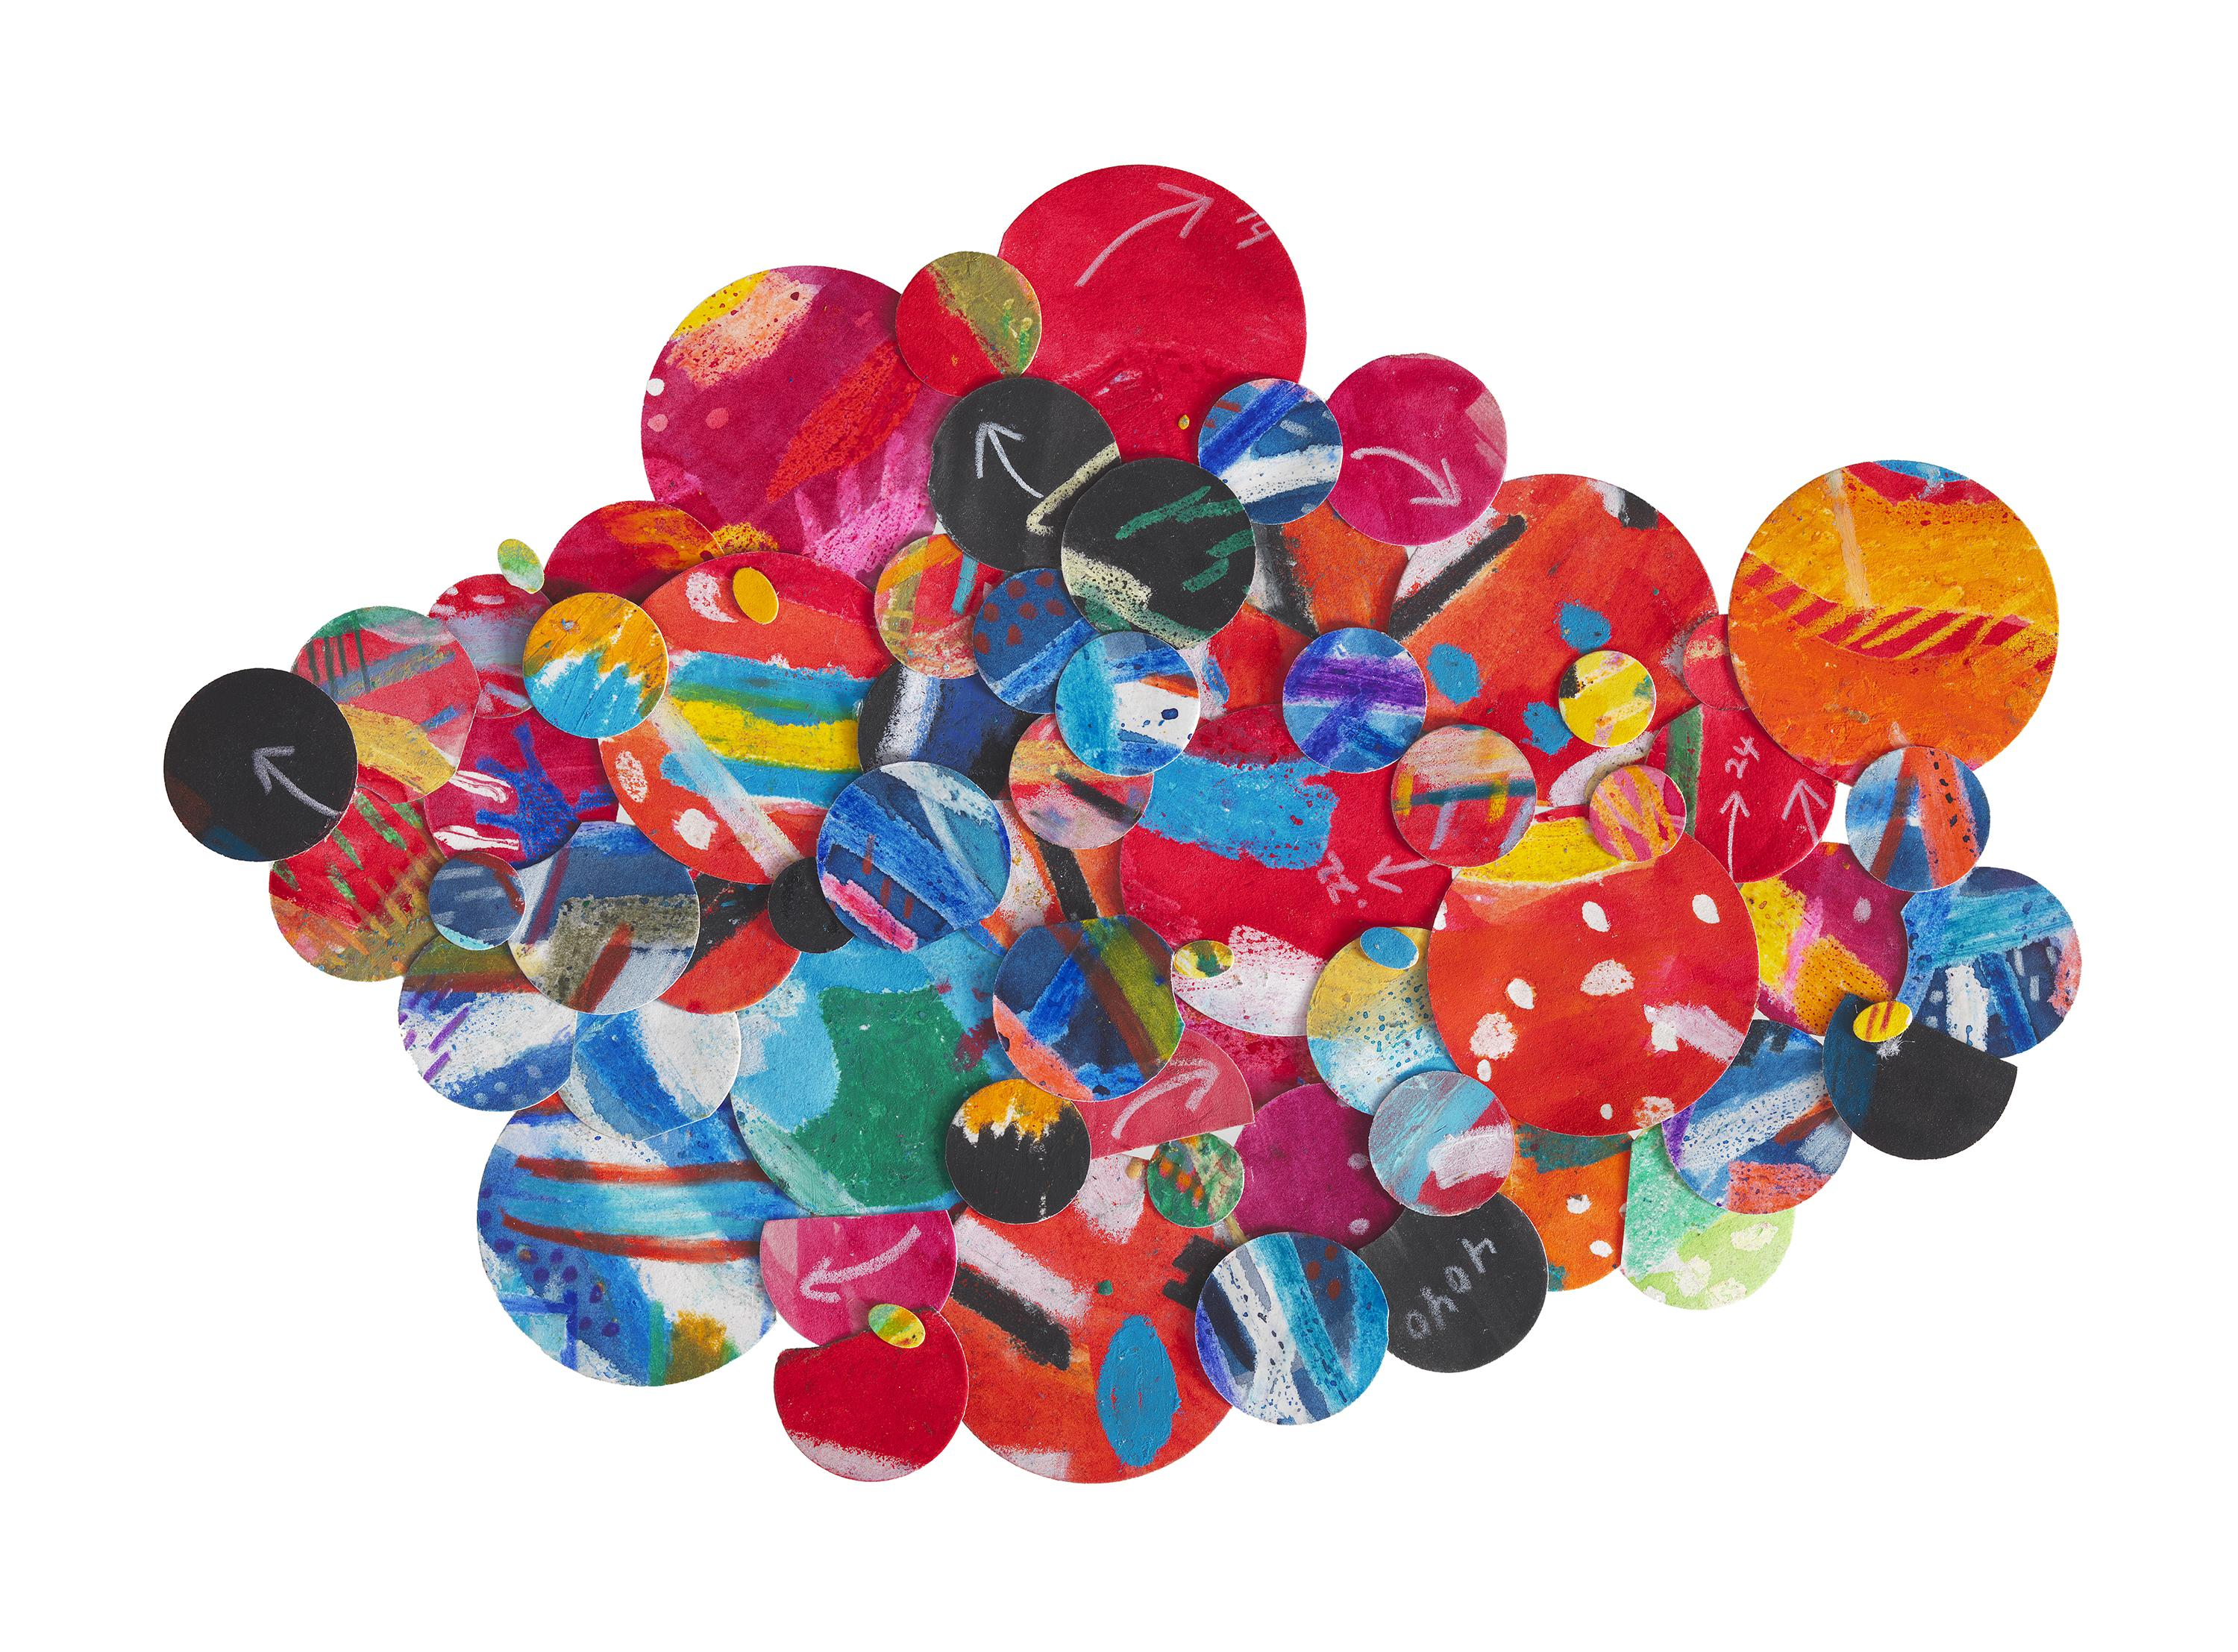 A collage of circles of various sizes and colors are clustered together.